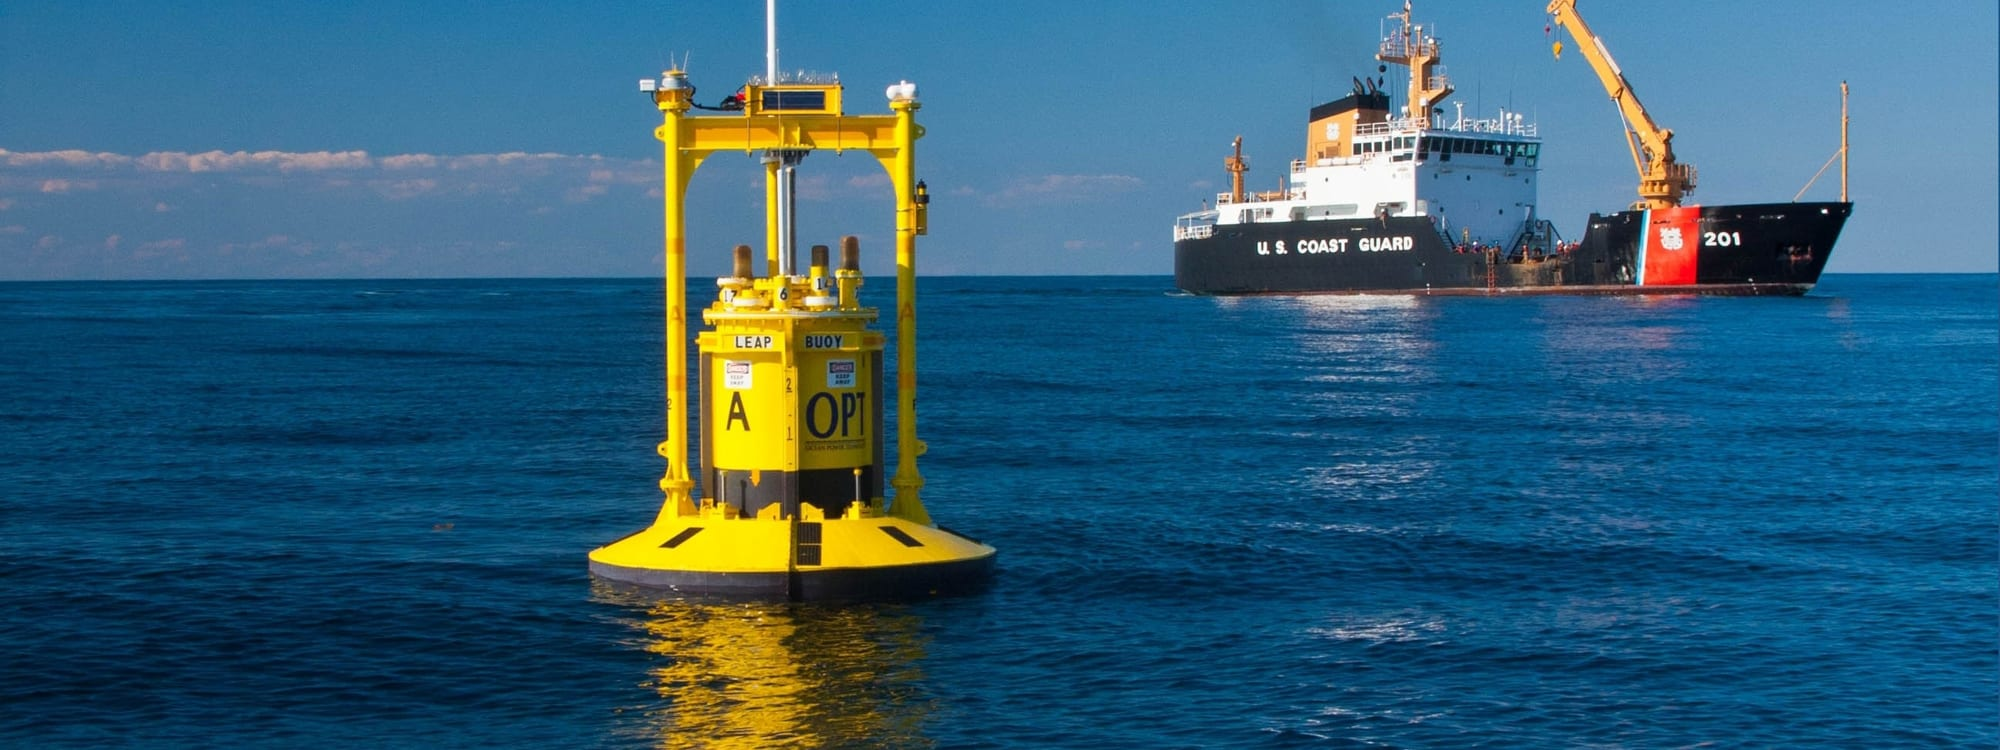 best imu for buoy position and motion monitoring sbg systems